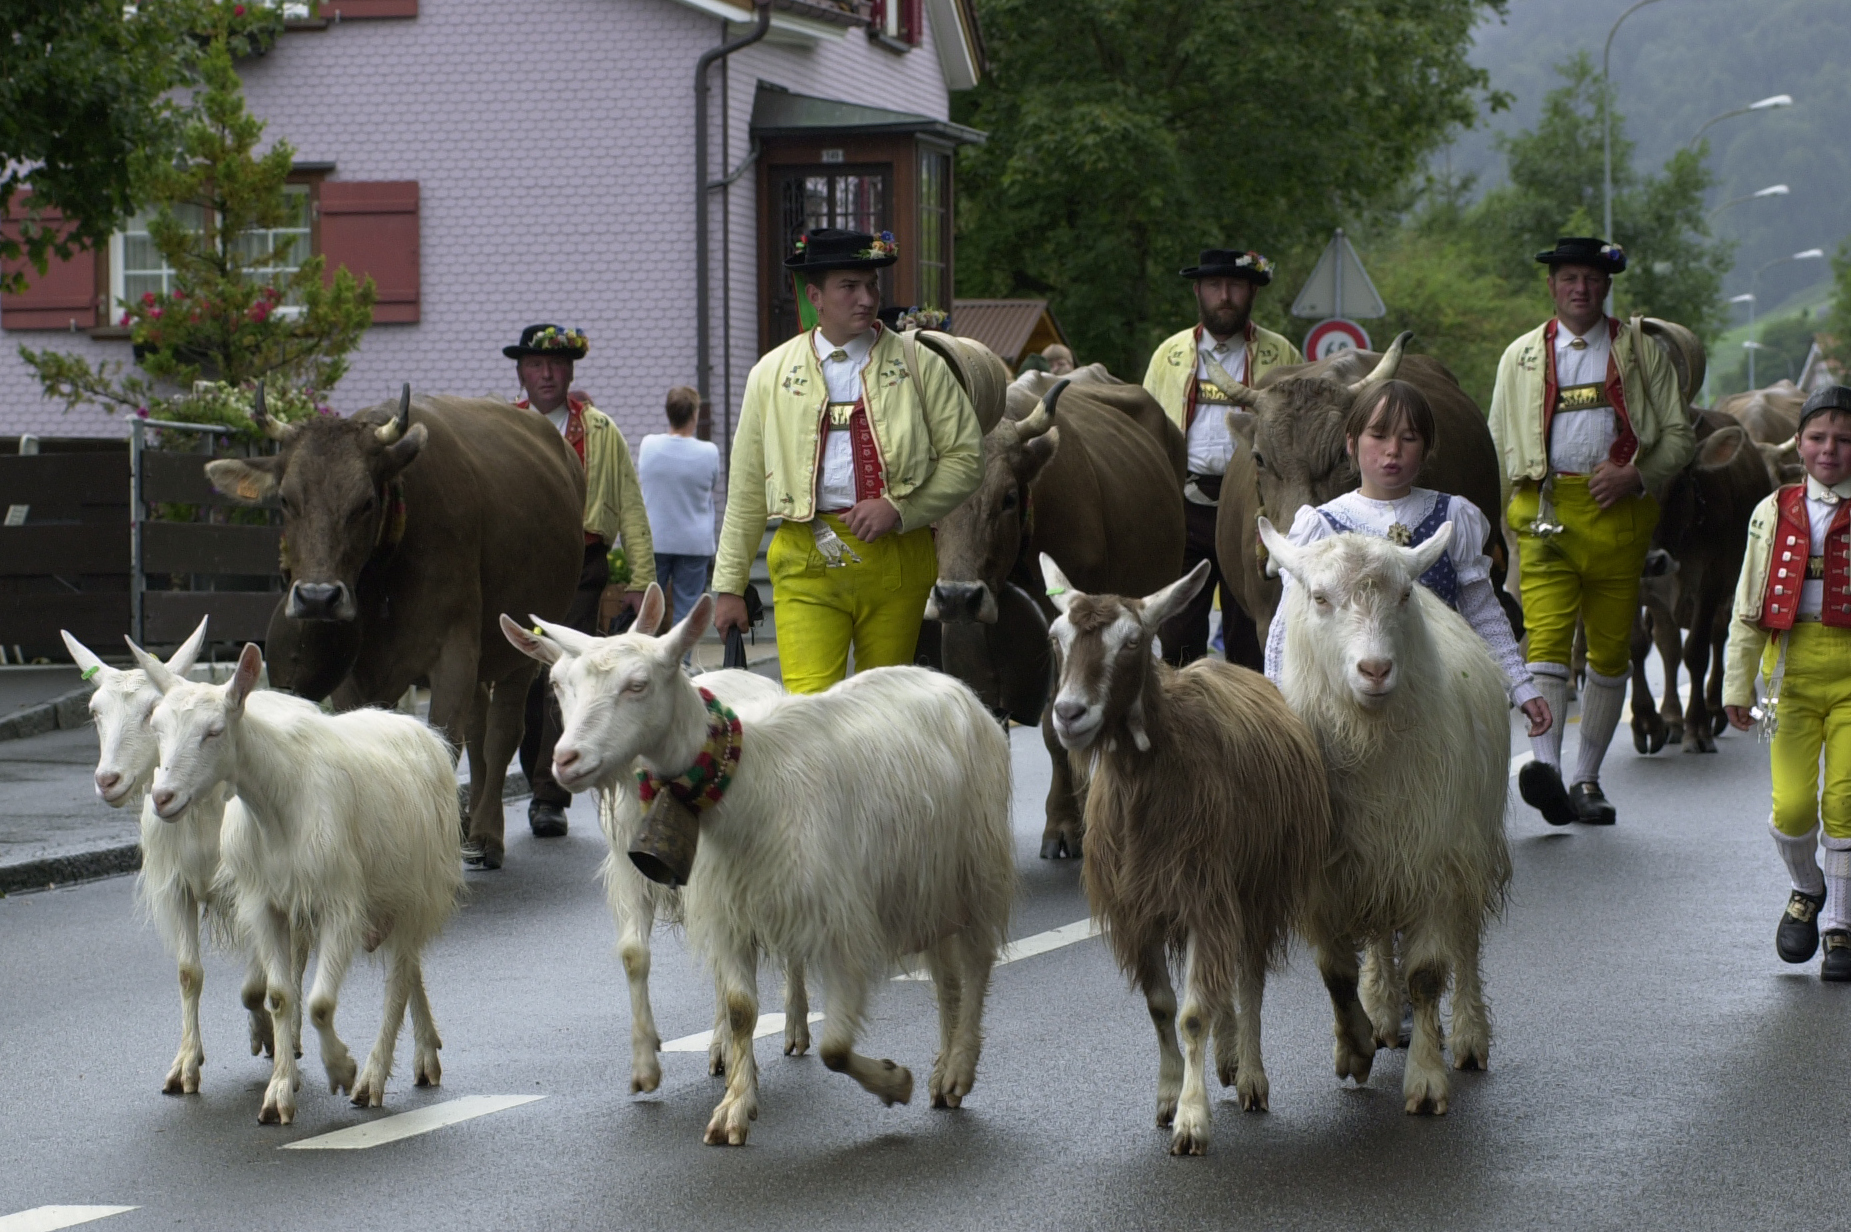 Descent, Urnäsch: Children and goats at the head of the procession © Hans Hürlemann, Urnäsch, 2001